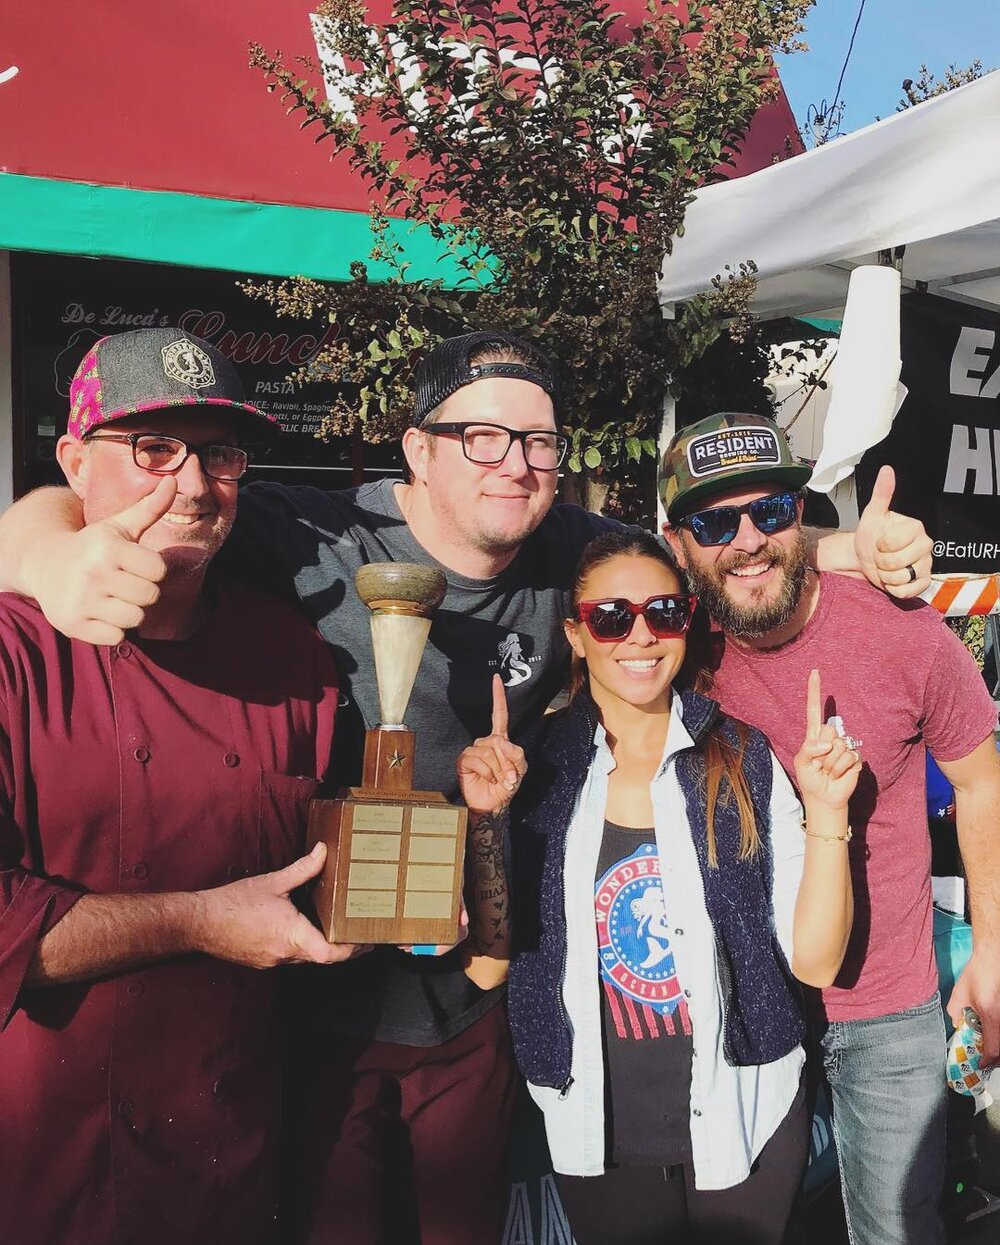 The Wonderland Ocean Pub crew were first time SoNo Fest competitors and won Best Overall!! Congratulations!